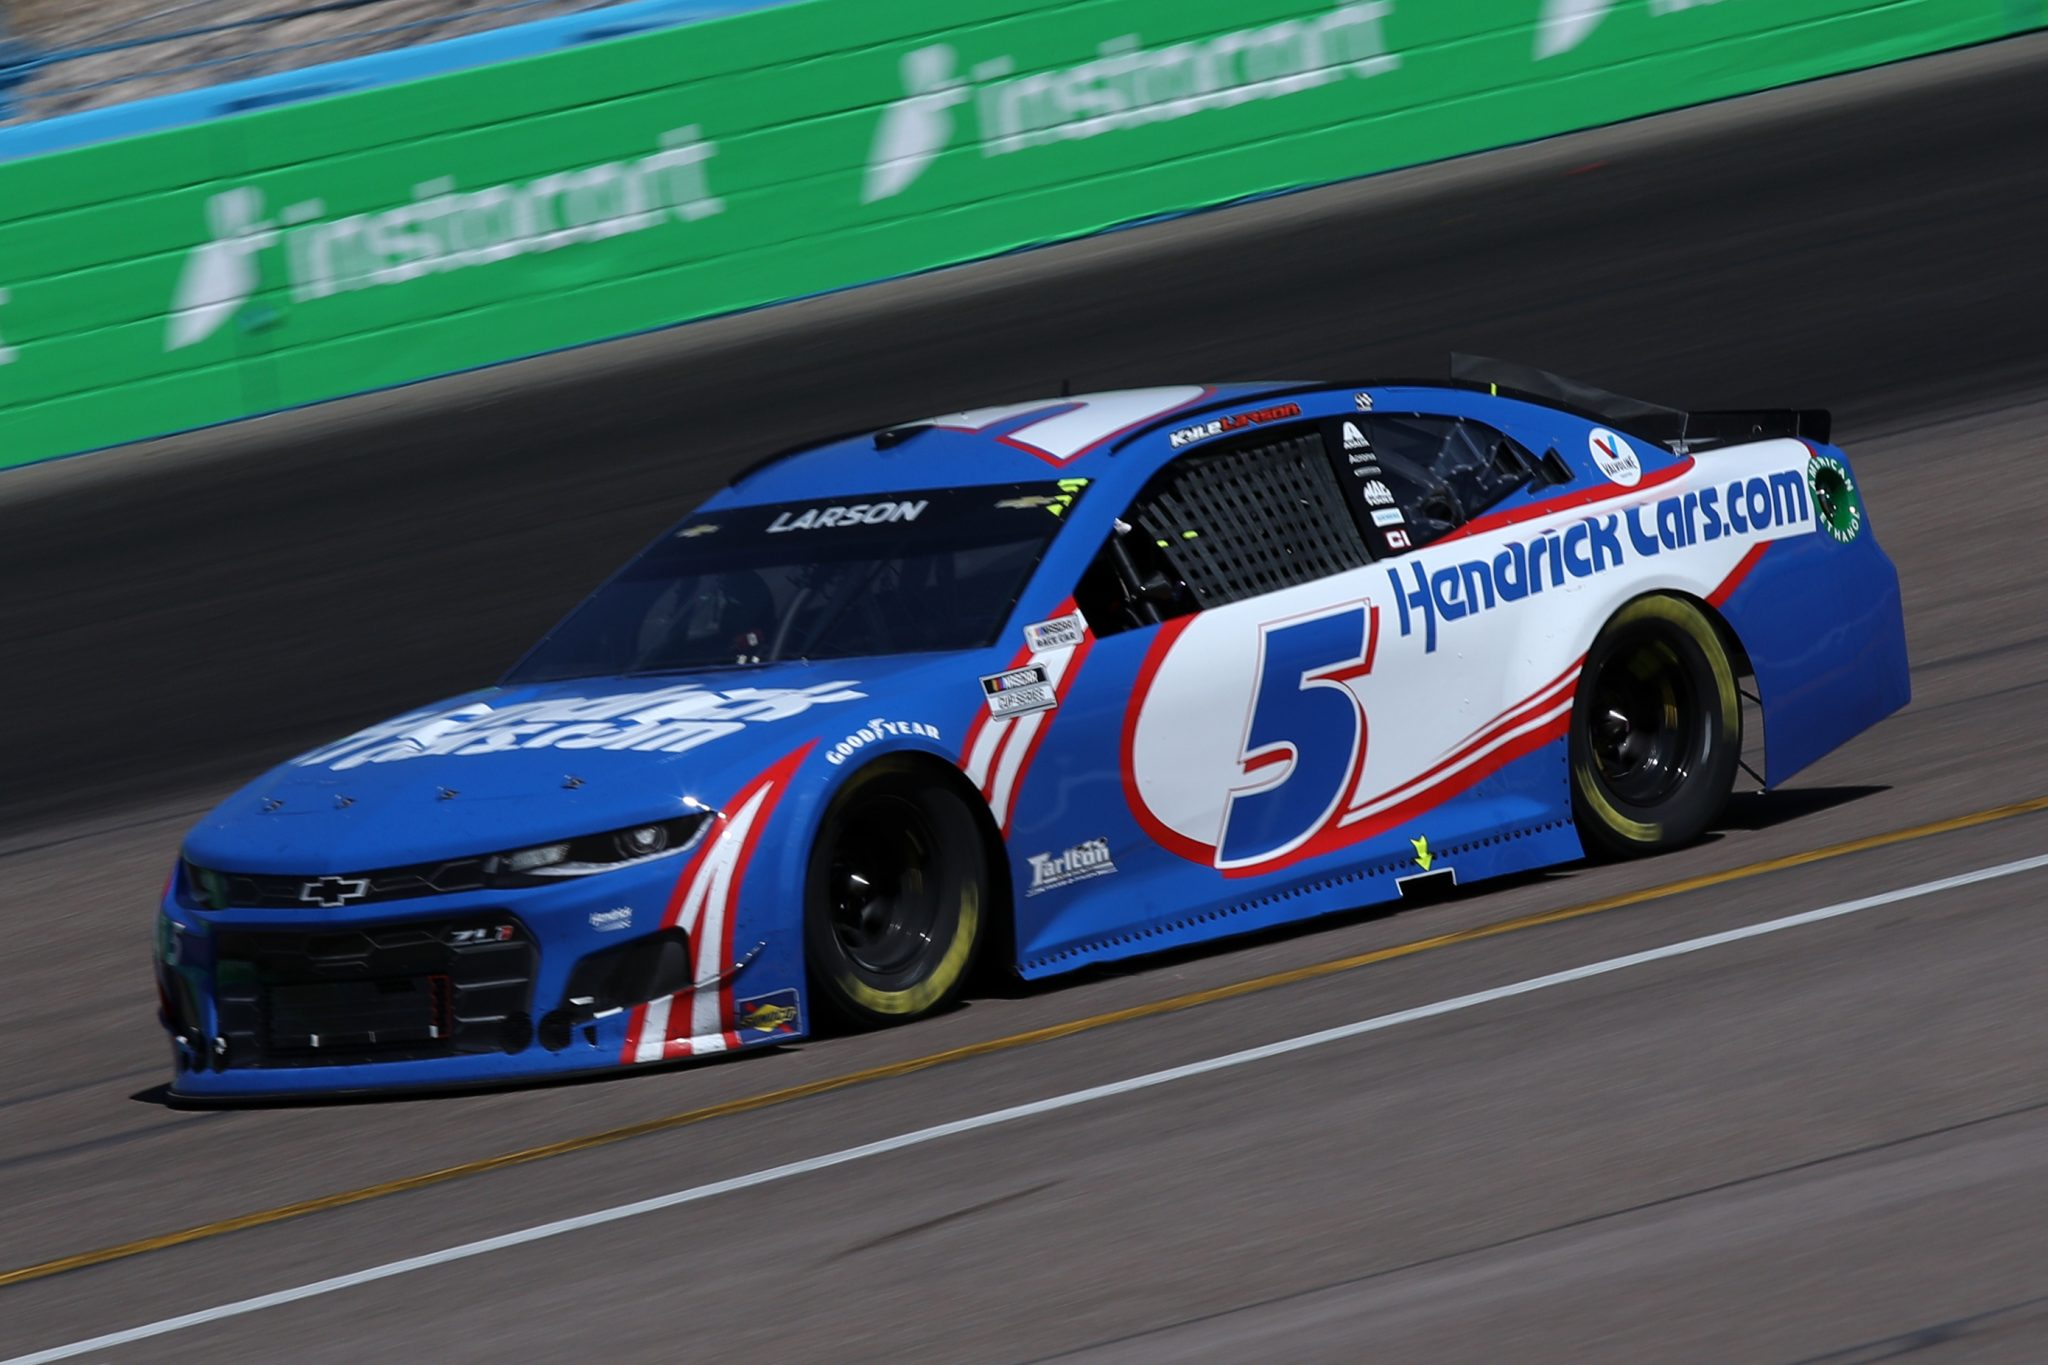 AVONDALE, ARIZONA - MARCH 14: Kyle Larson, driver of the #5 HendrickCars.com Chevrolet, drives during the NASCAR Cup Series Instacart 500 at Phoenix Raceway on March 14, 2021 in Avondale, Arizona. (Photo by Sean Gardner/Getty Images) | Getty Images